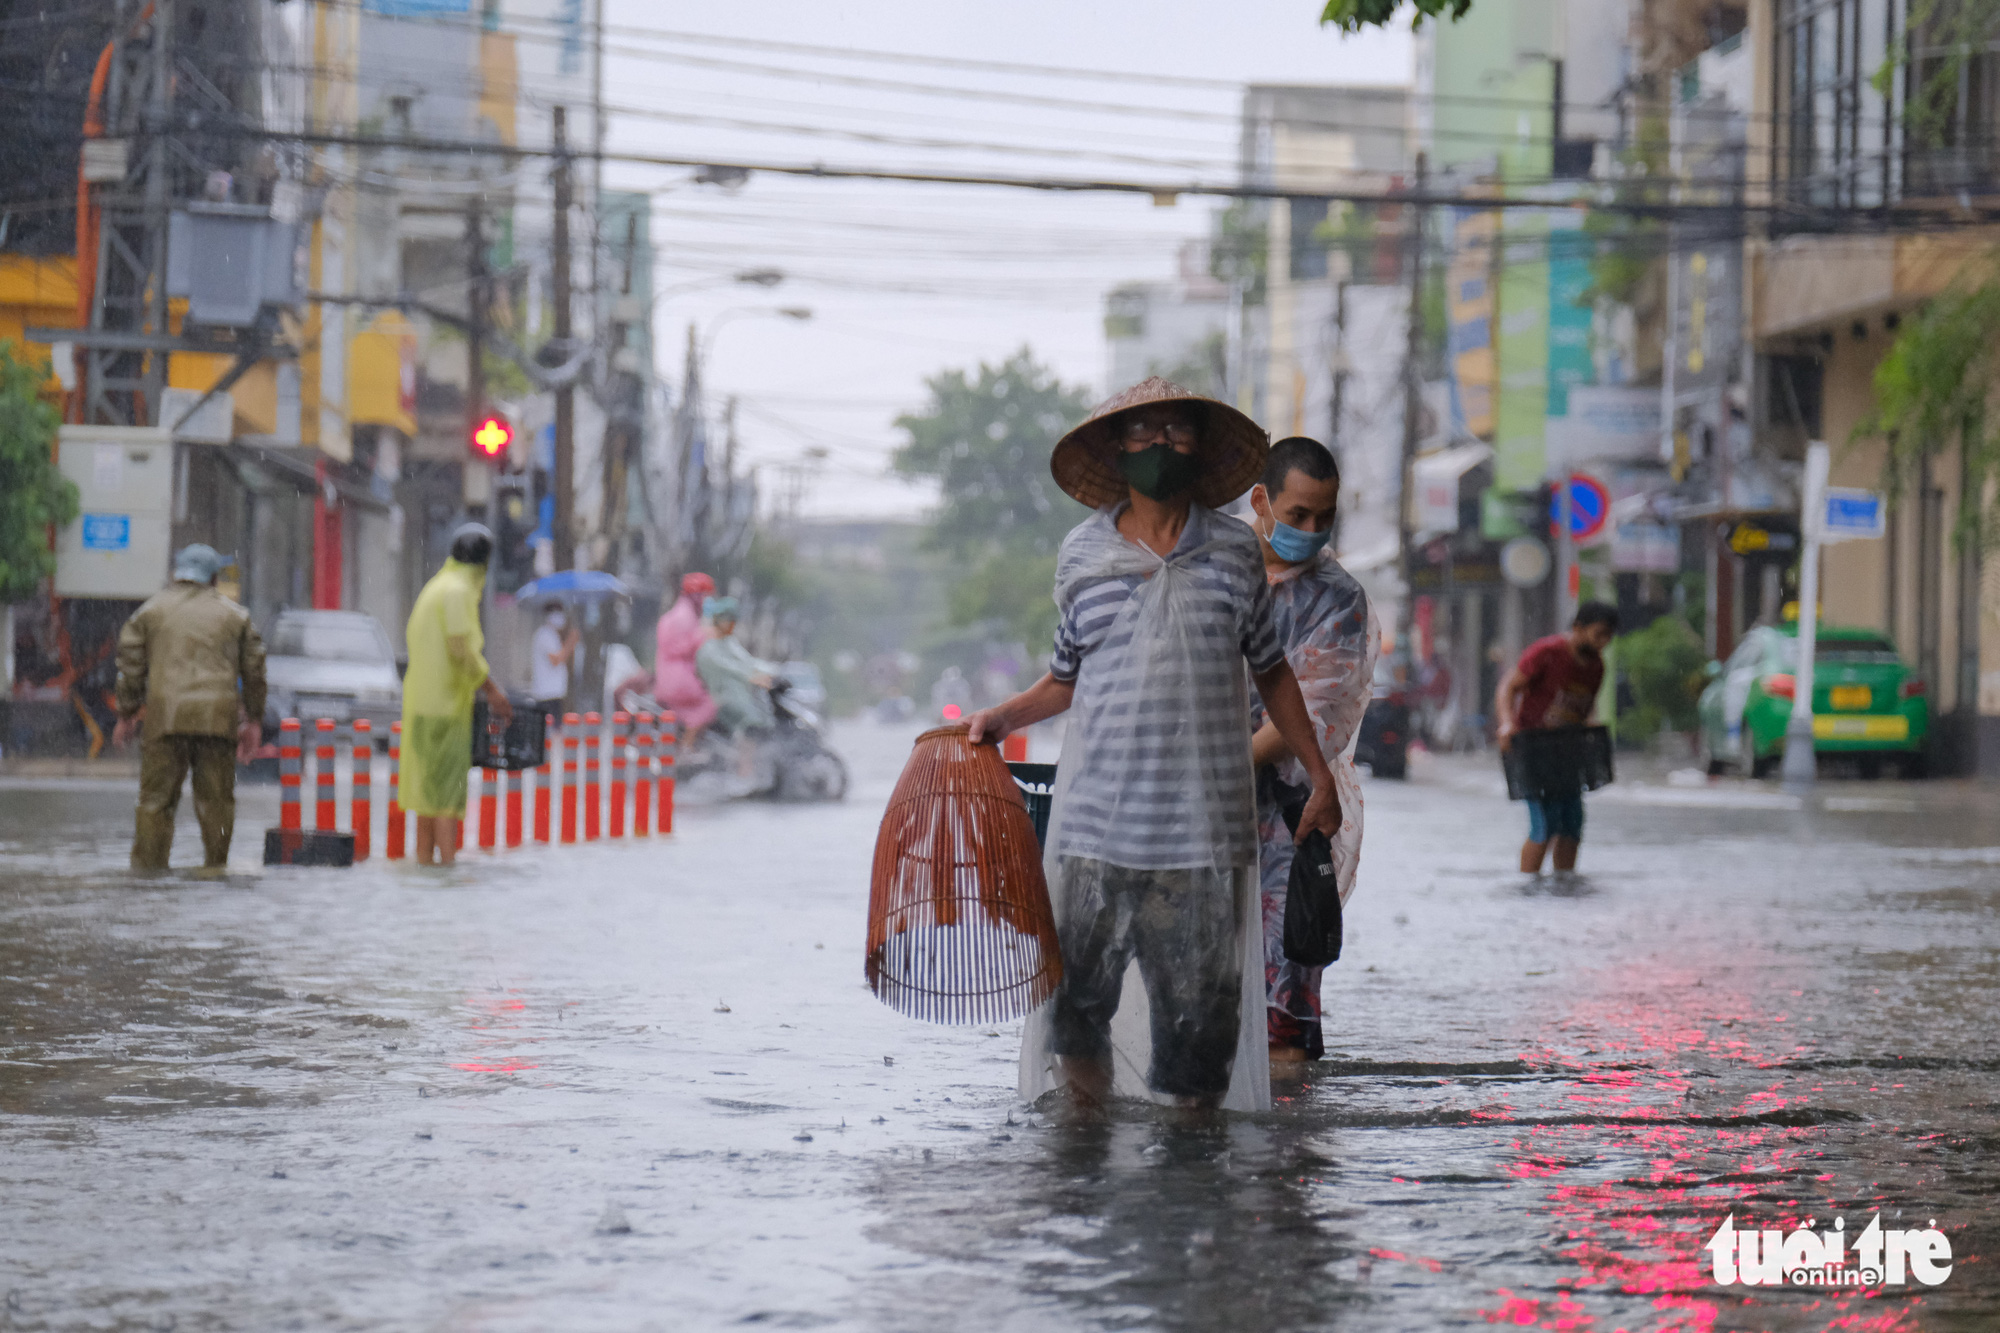 In Da Nang, people catch fish on deluged downtown streets